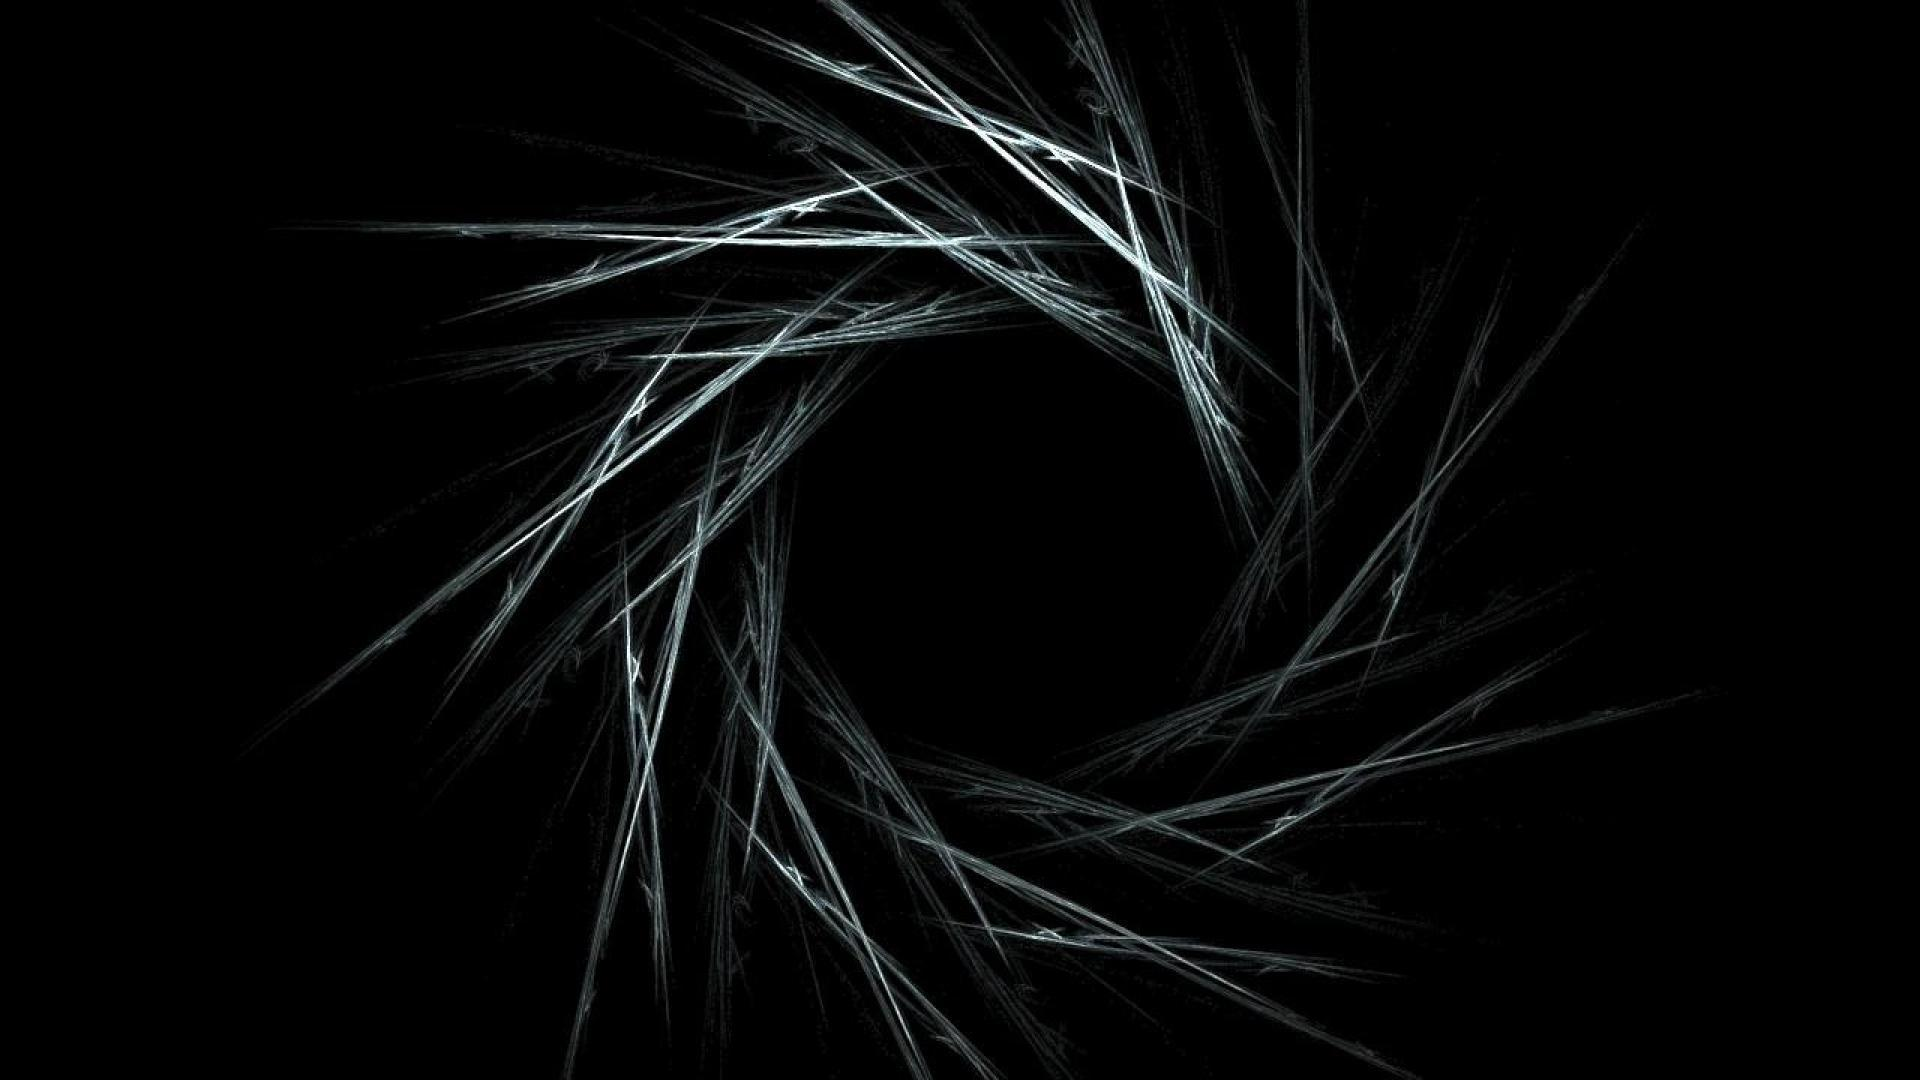 Abstract Backgrounds Black Hd Image 3 HD Wallpapers